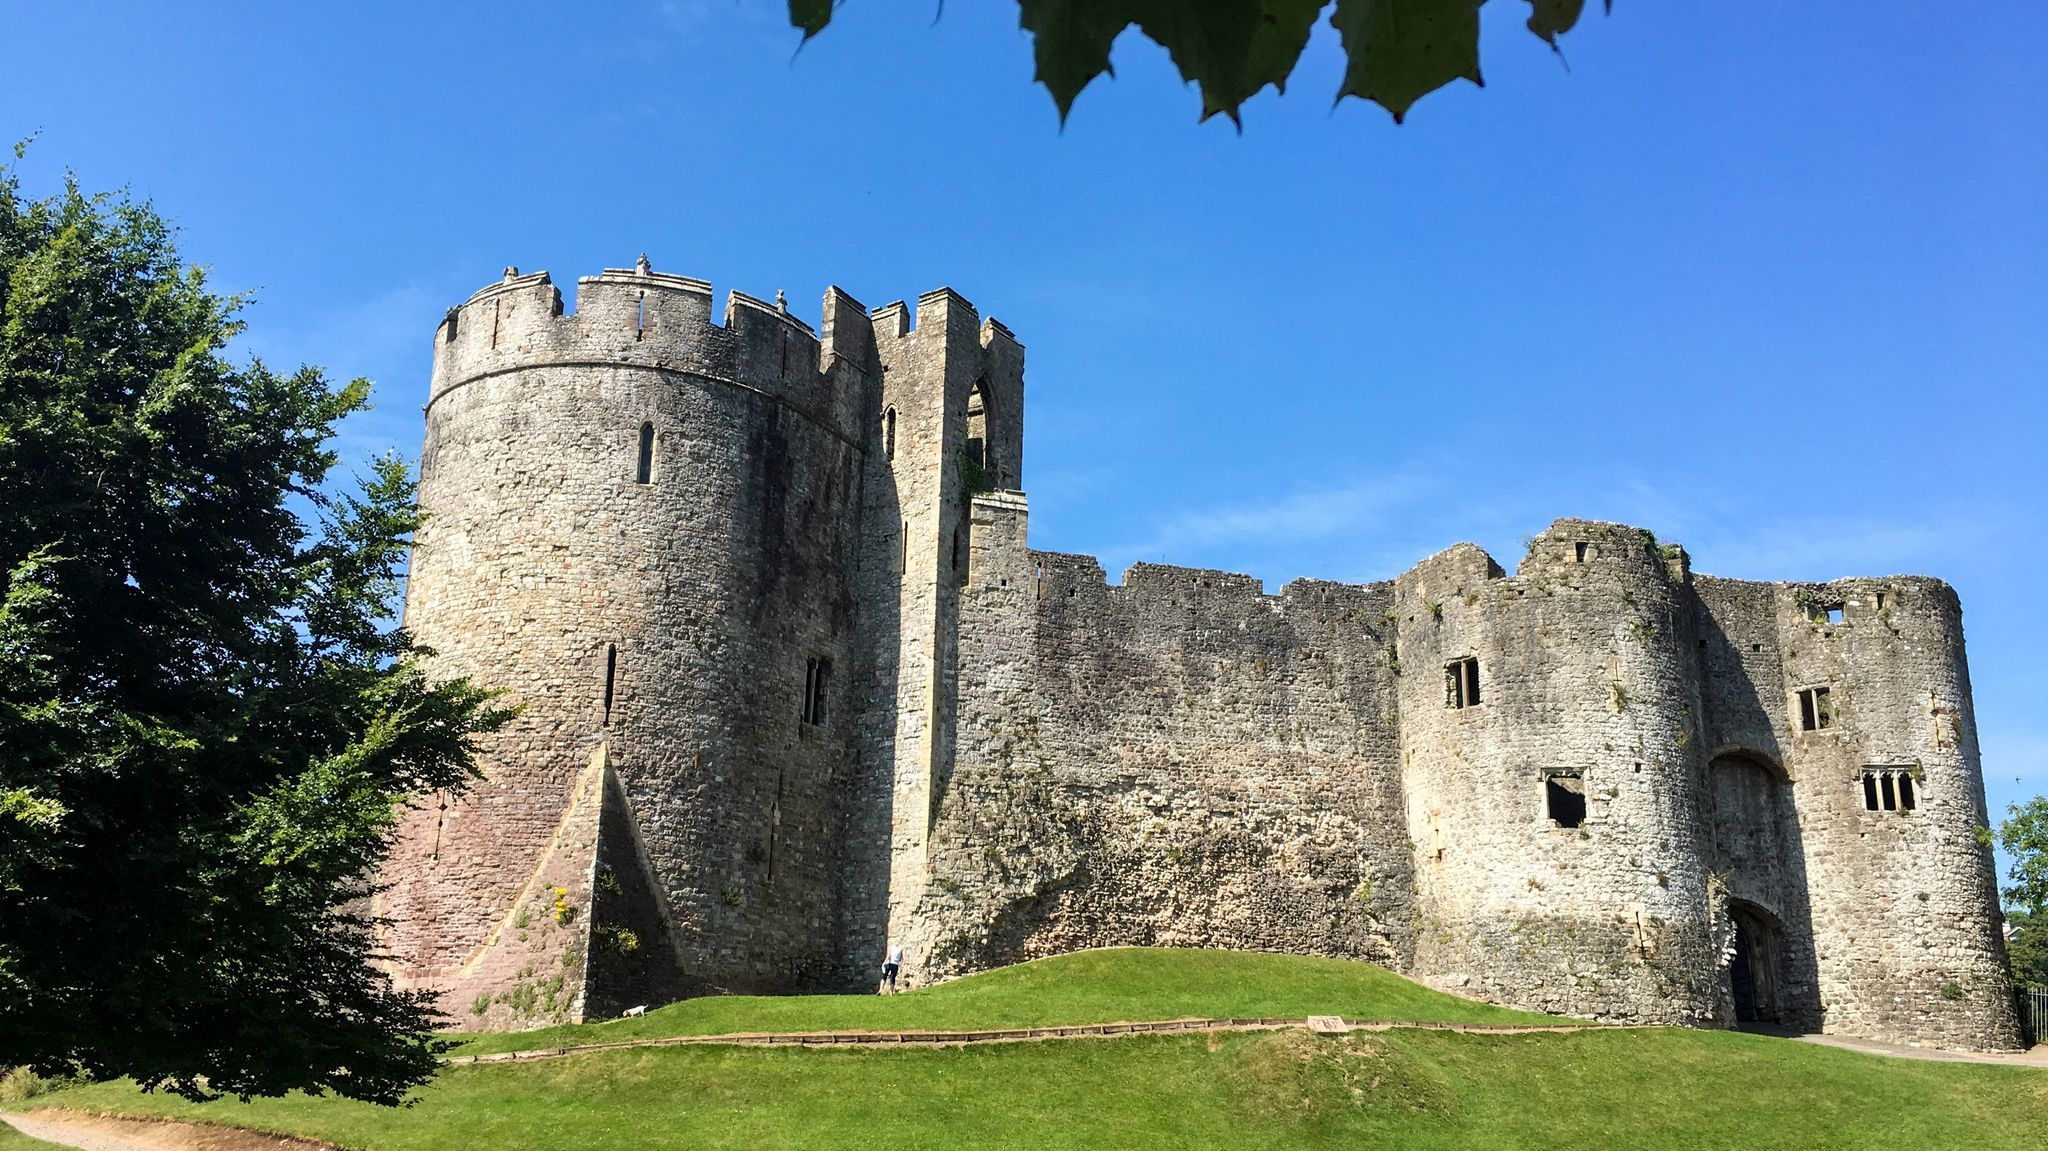 Chepstow Castle, perched high above the banks of the river Wye in southeast Wales. Construction began in 1067, less than a year after William the Conqueror was crowned King of England.